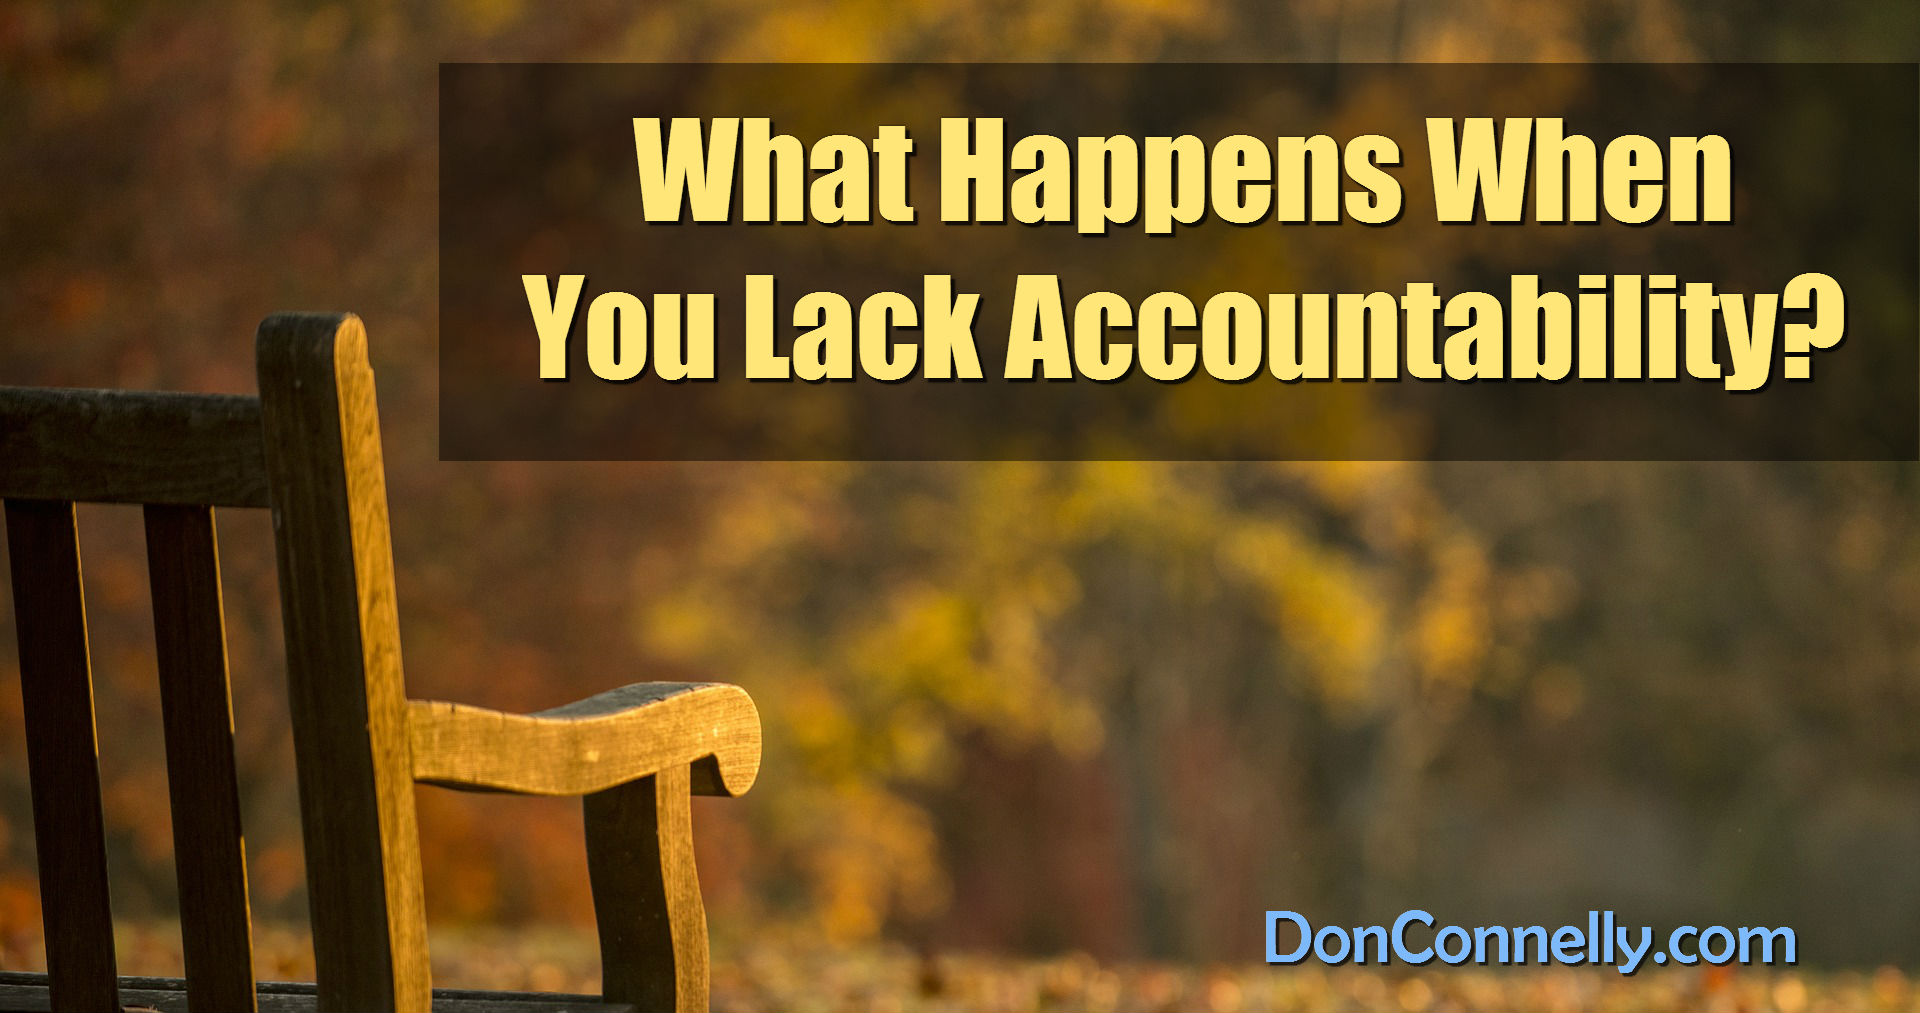 What Happens When You Lack Accountability